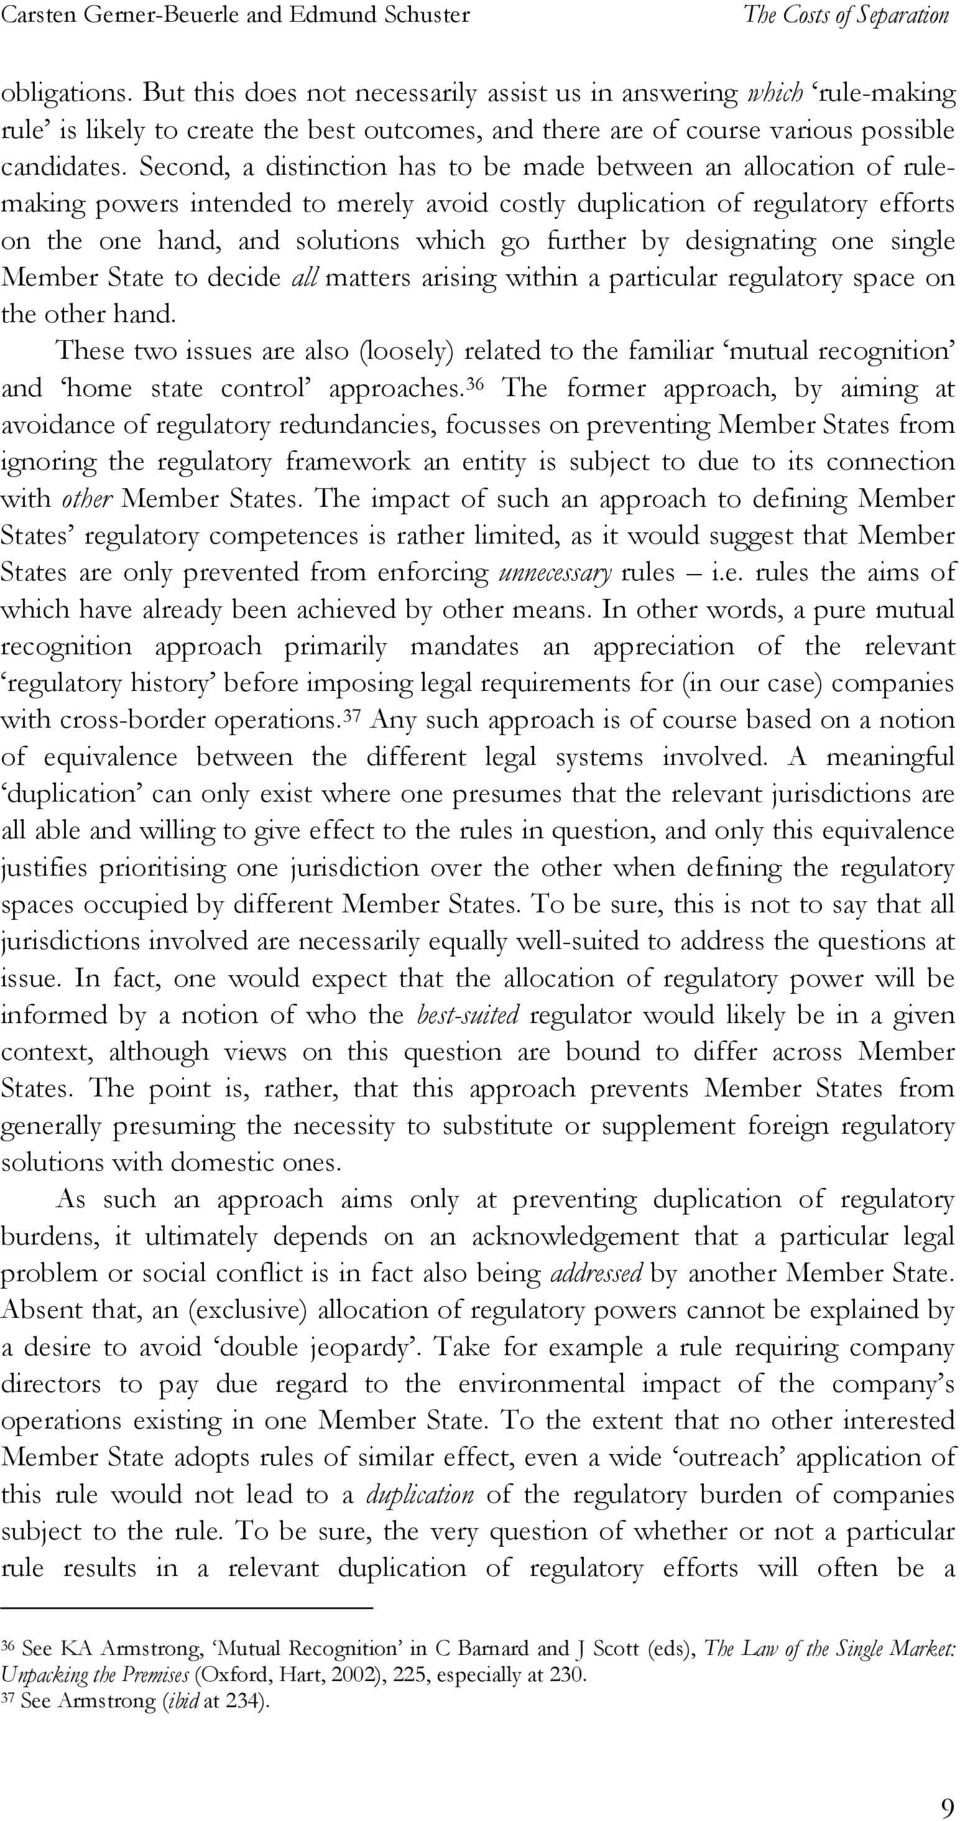 Second, a distinction has to be made between an allocation of rulemaking powers intended to merely avoid costly duplication of regulatory efforts on the one hand, and solutions which go further by